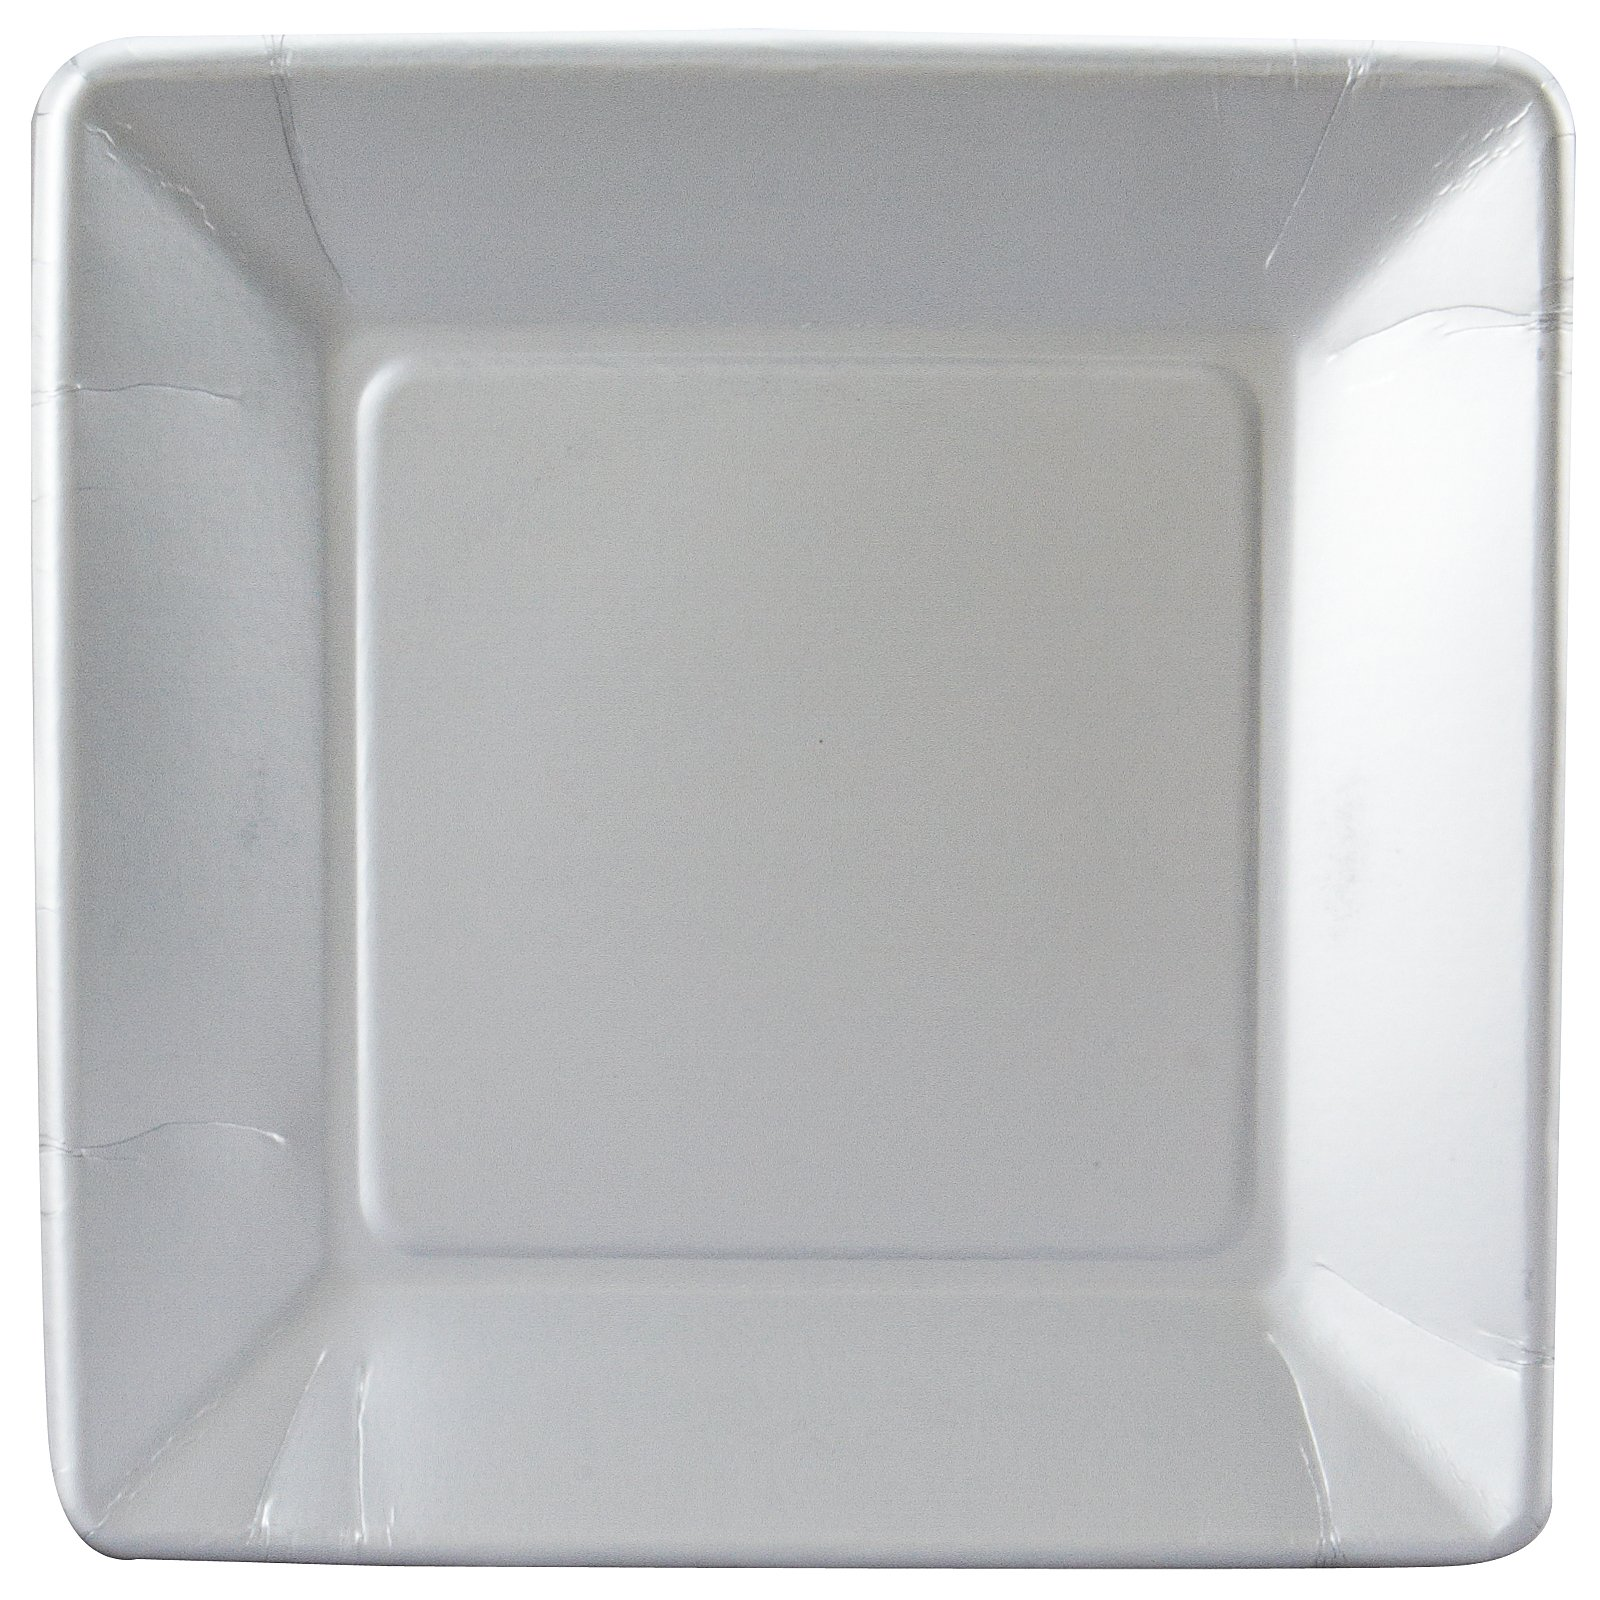 Shimmering Silver (Silver) Square Dinner Plates (18 count)